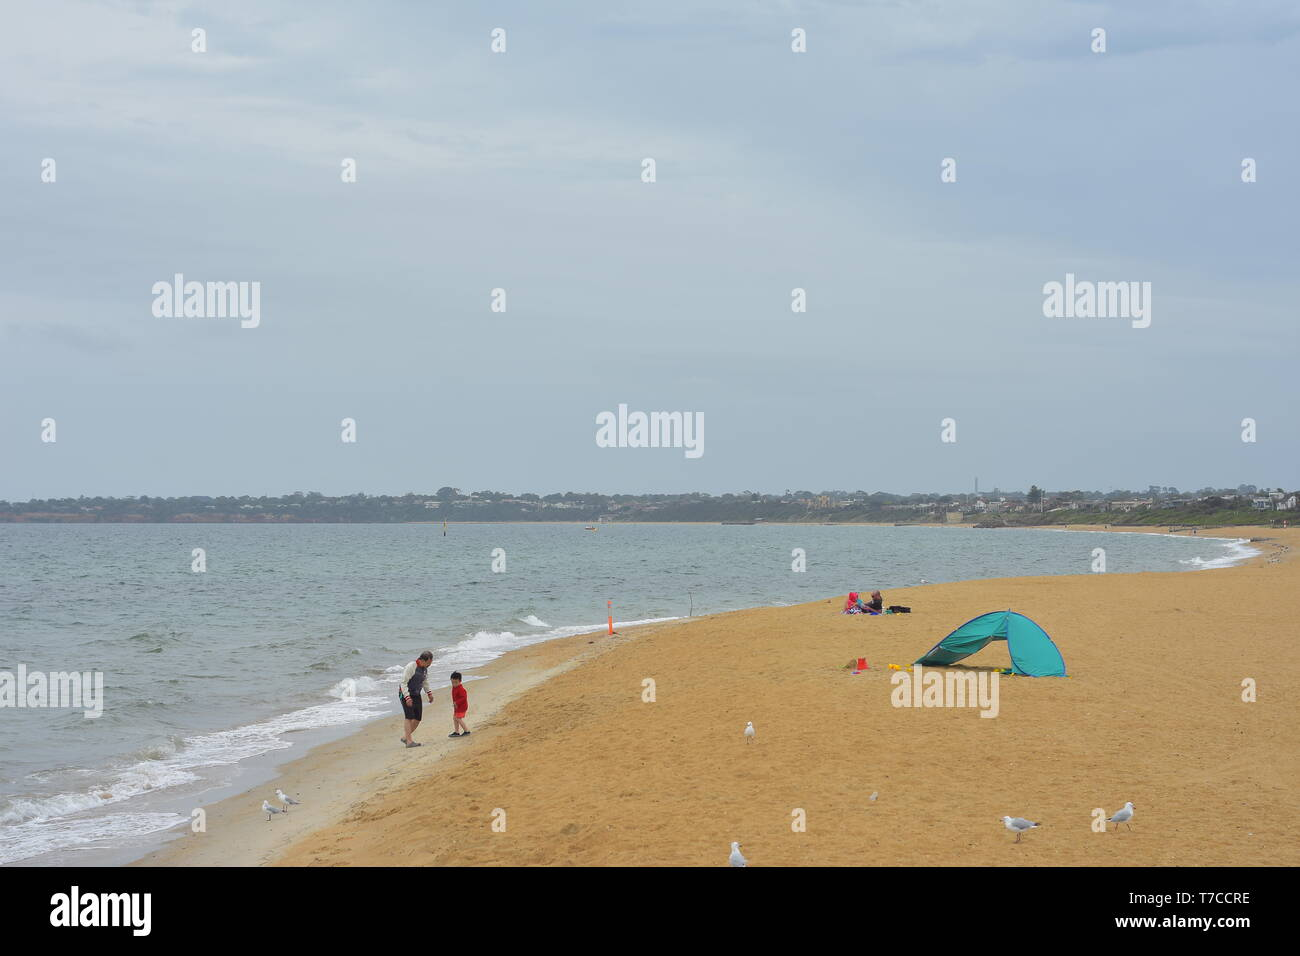 Lonely family playing on sandy beach next to beach tent on overcast day. - Stock Image